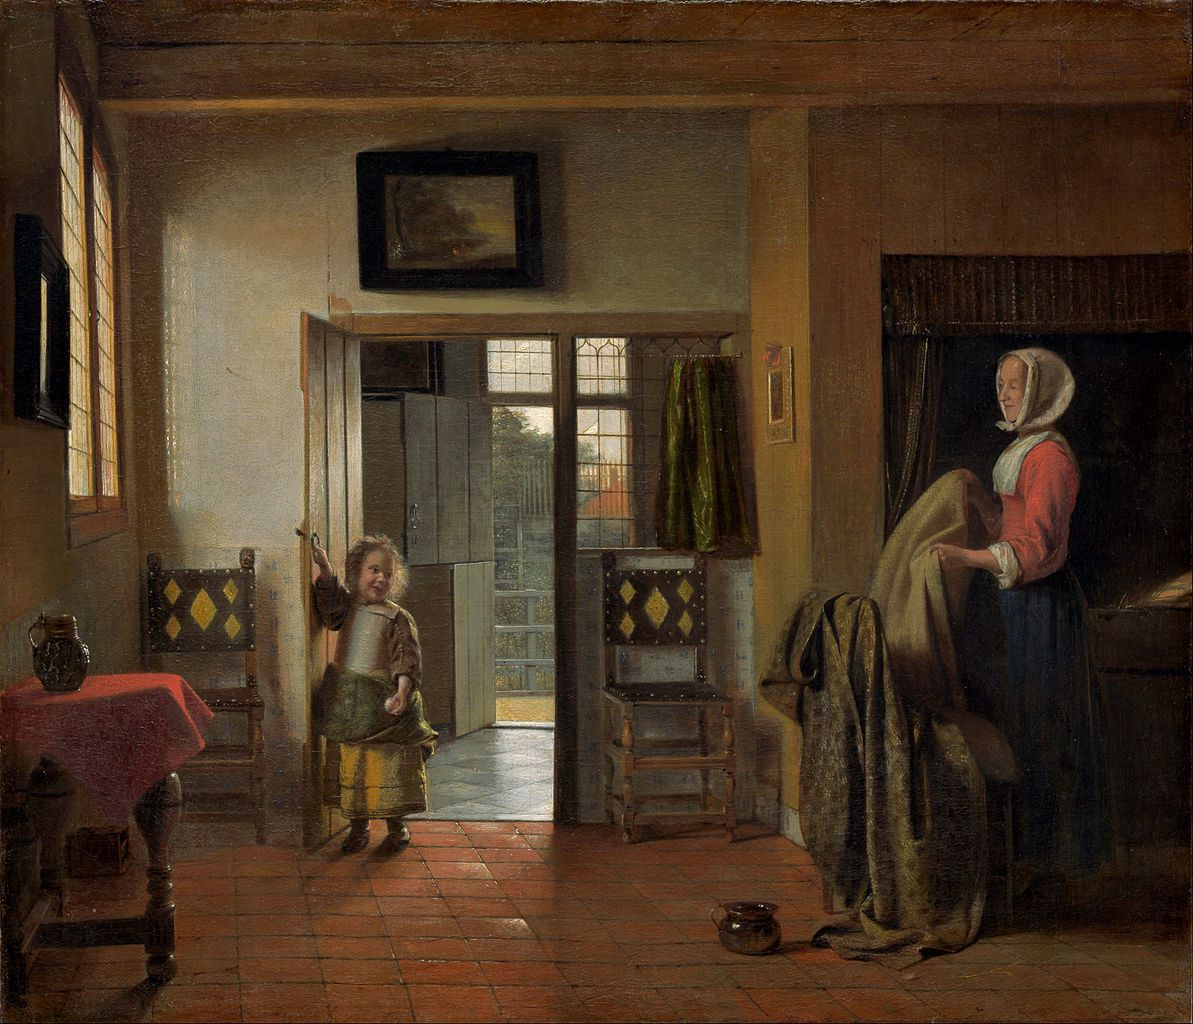 Pieter de Hooch au Rijksmuseum et à la National Gallery of Art de Washington